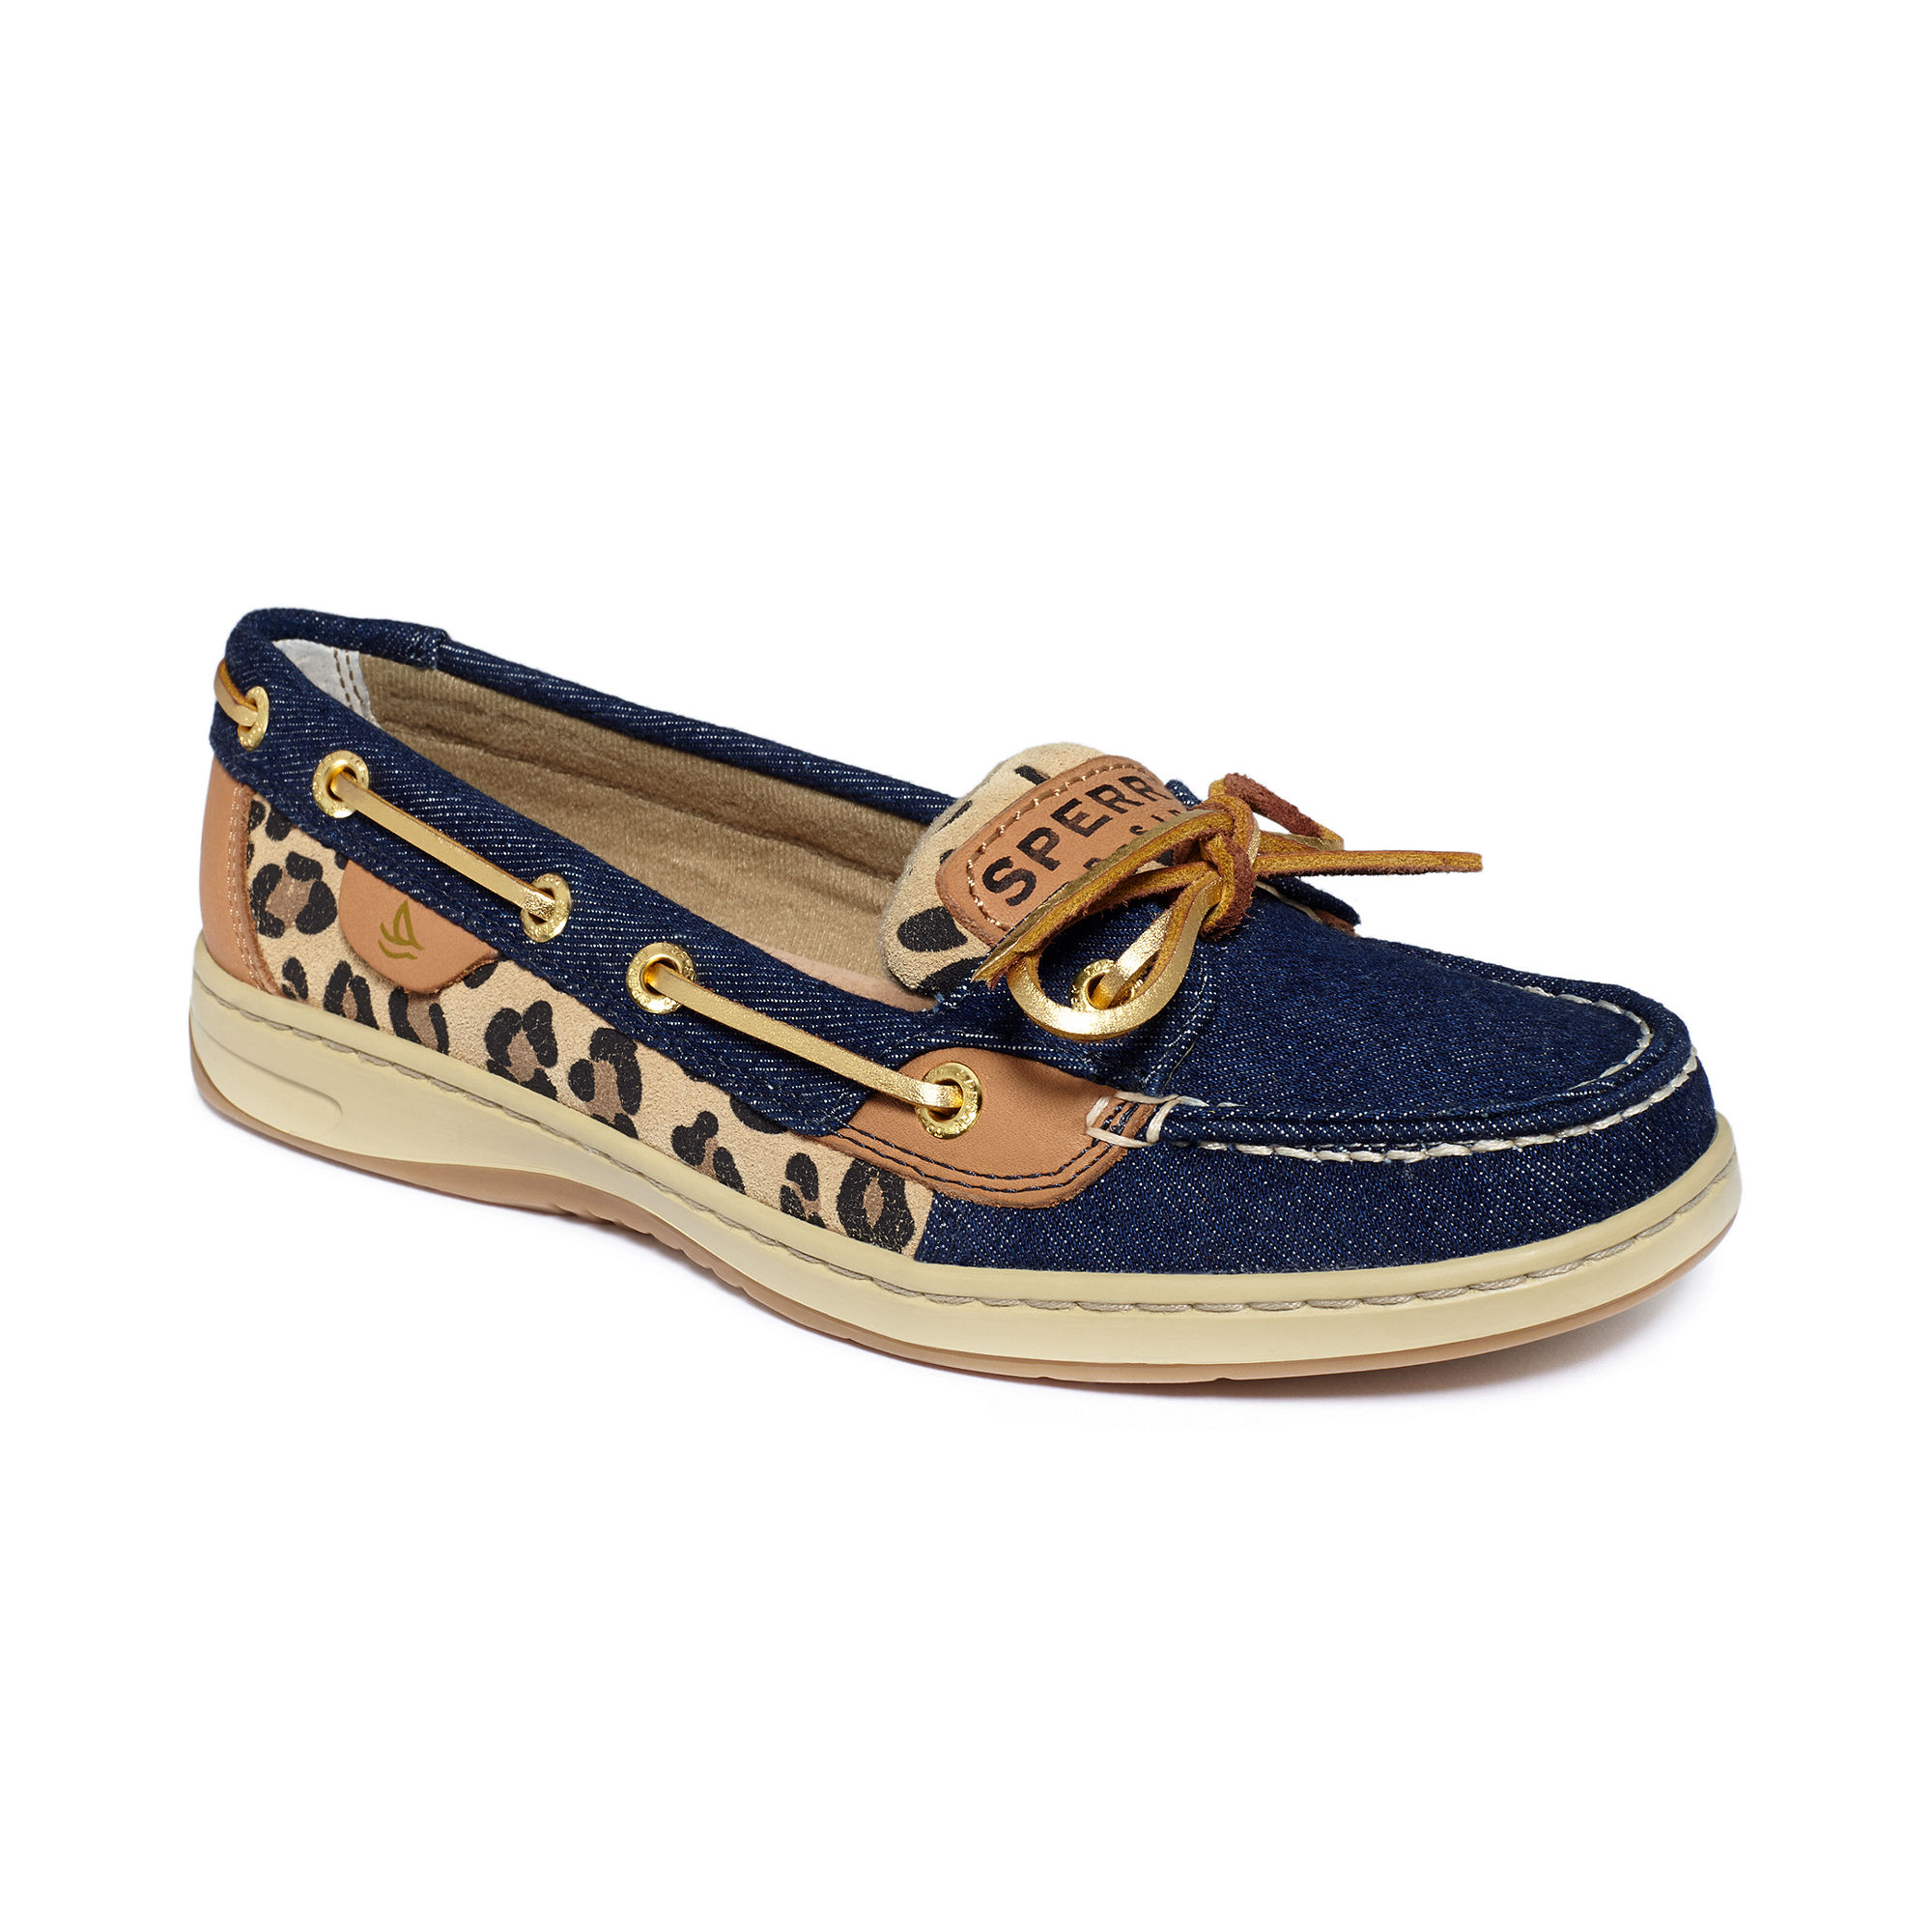 Lyst - Sperry top-sider Angelfish Boat Shoes in Blue